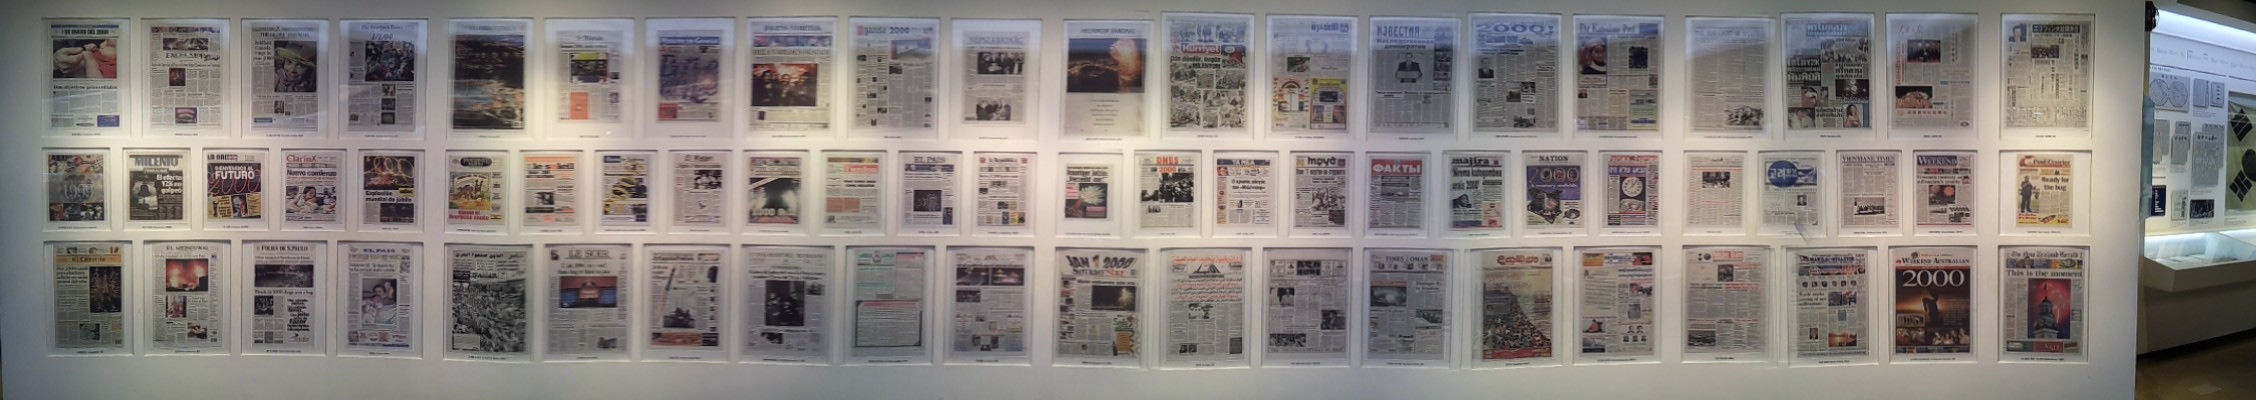 channel A newspaper